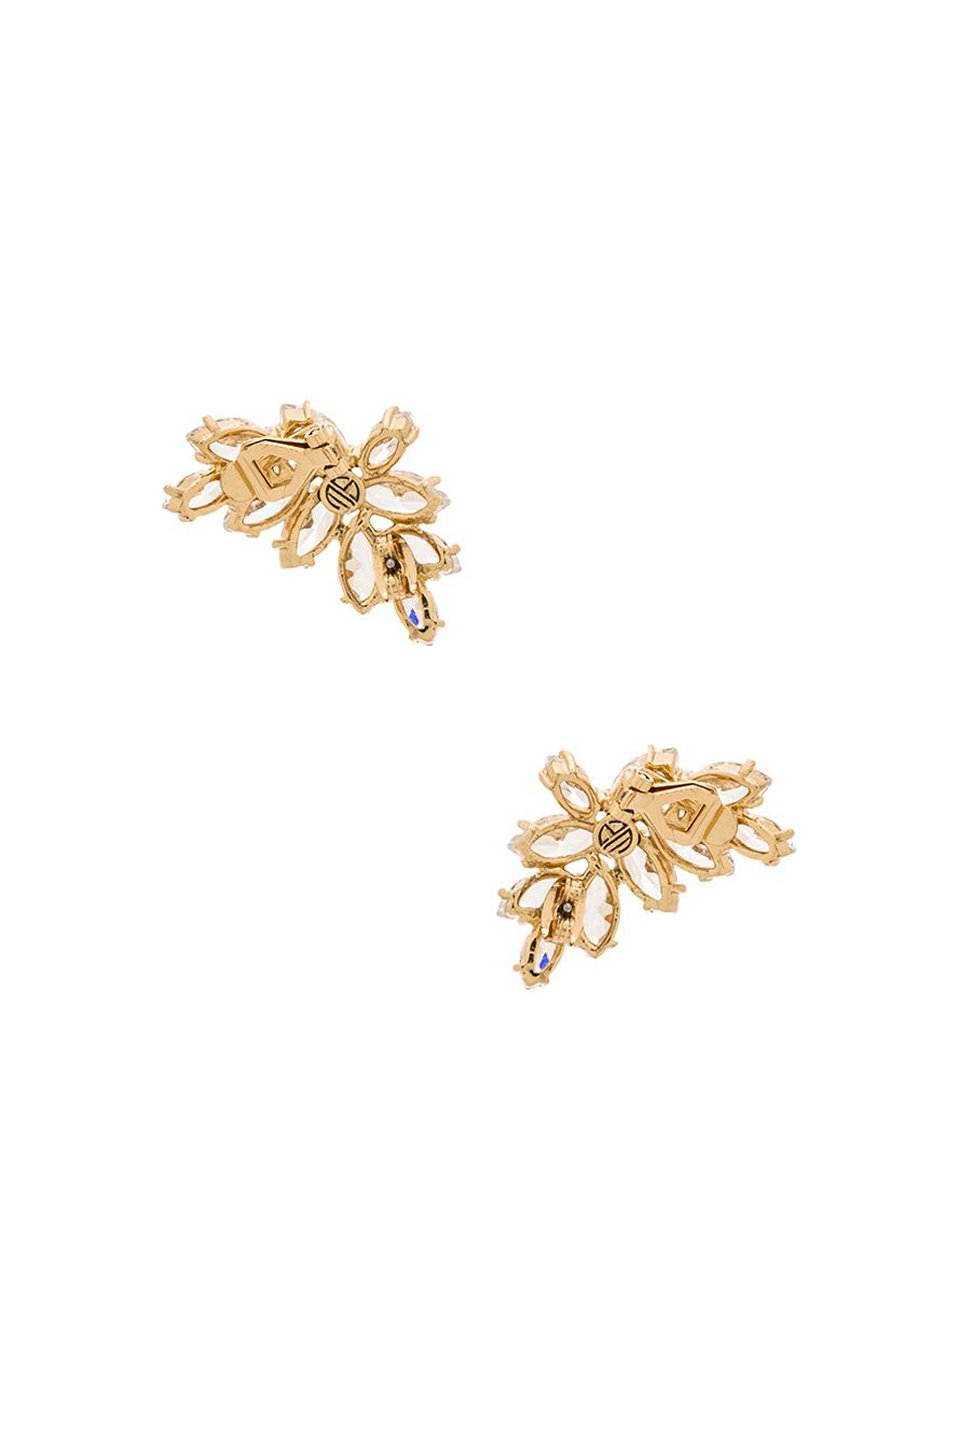 Samantha Wills You Are All I See Earring Cuffs in Metallic Gold 3m7OYmlGw